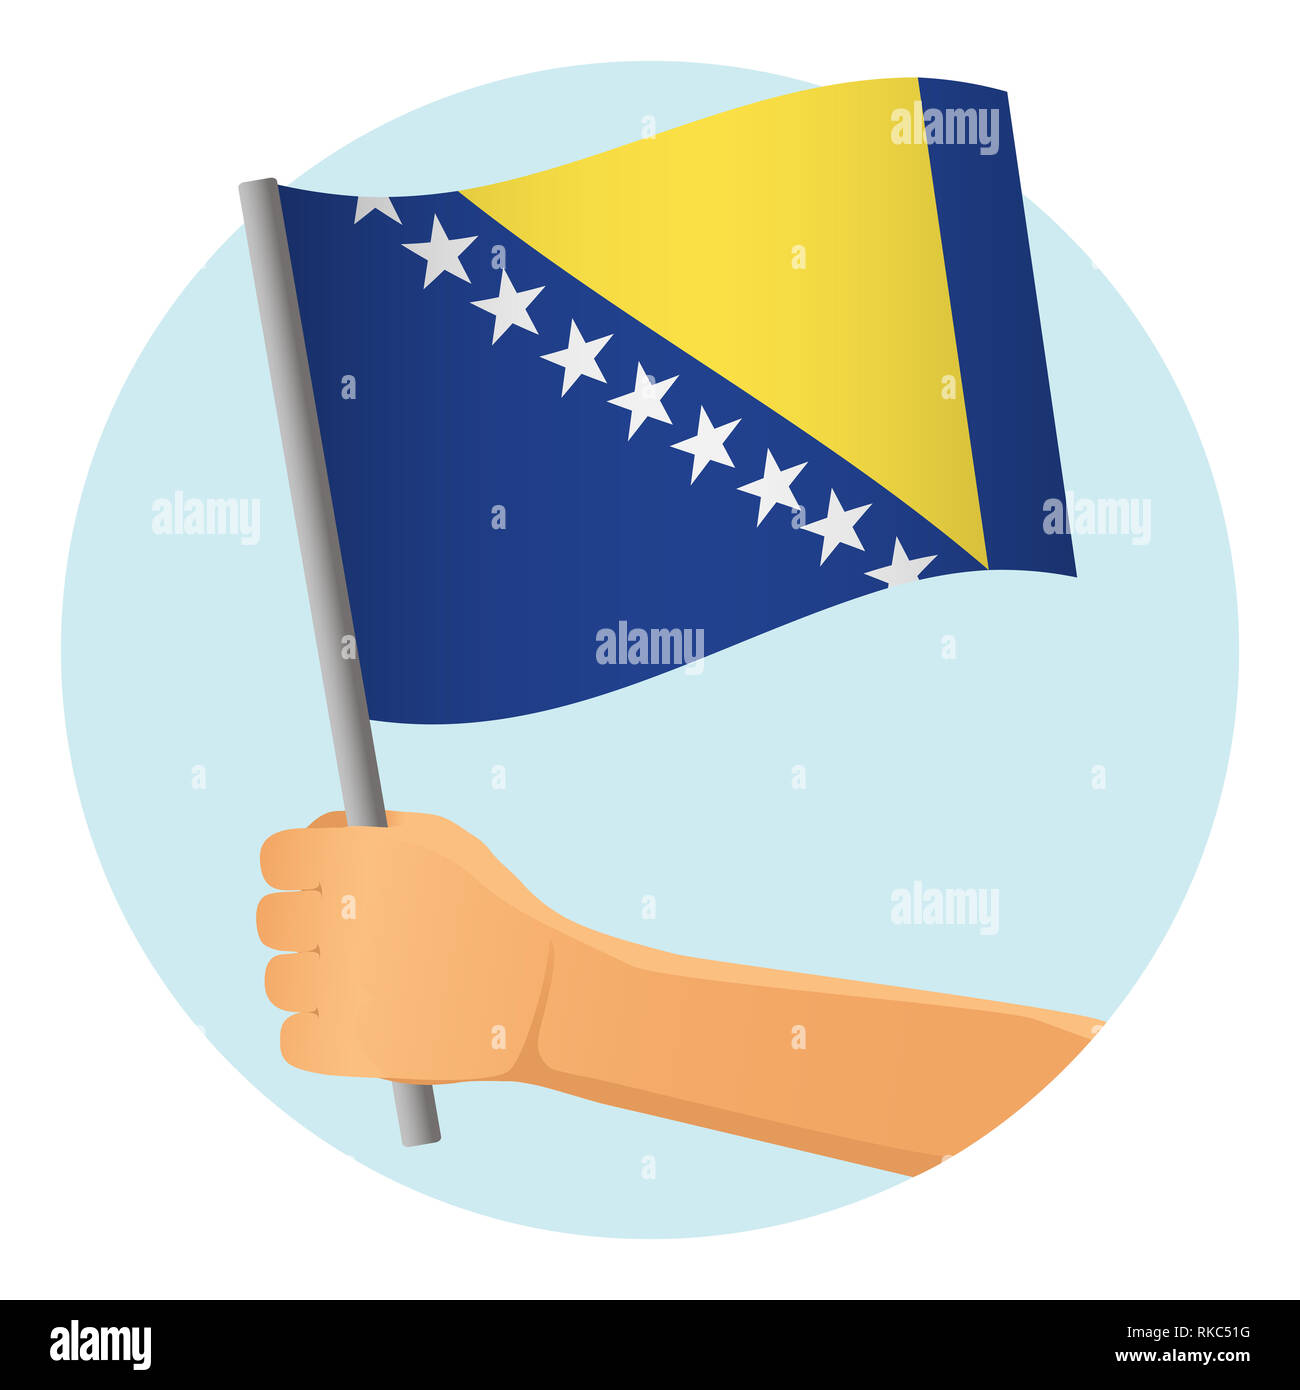 Bosnia and Herzegovina flag in hand. Patriotic background. National flag of Bosnia and Herzegovina  illustration - Stock Image